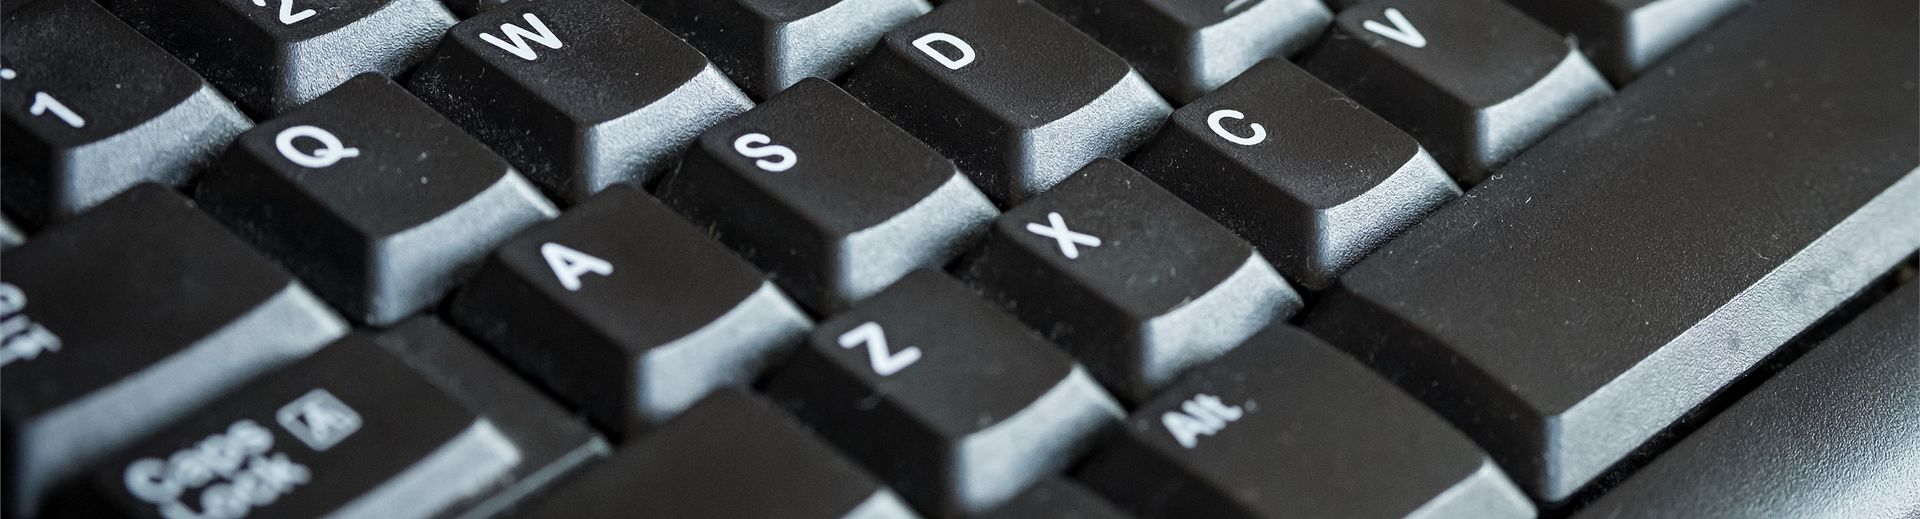 A close-up look of a grey computer keyboard.